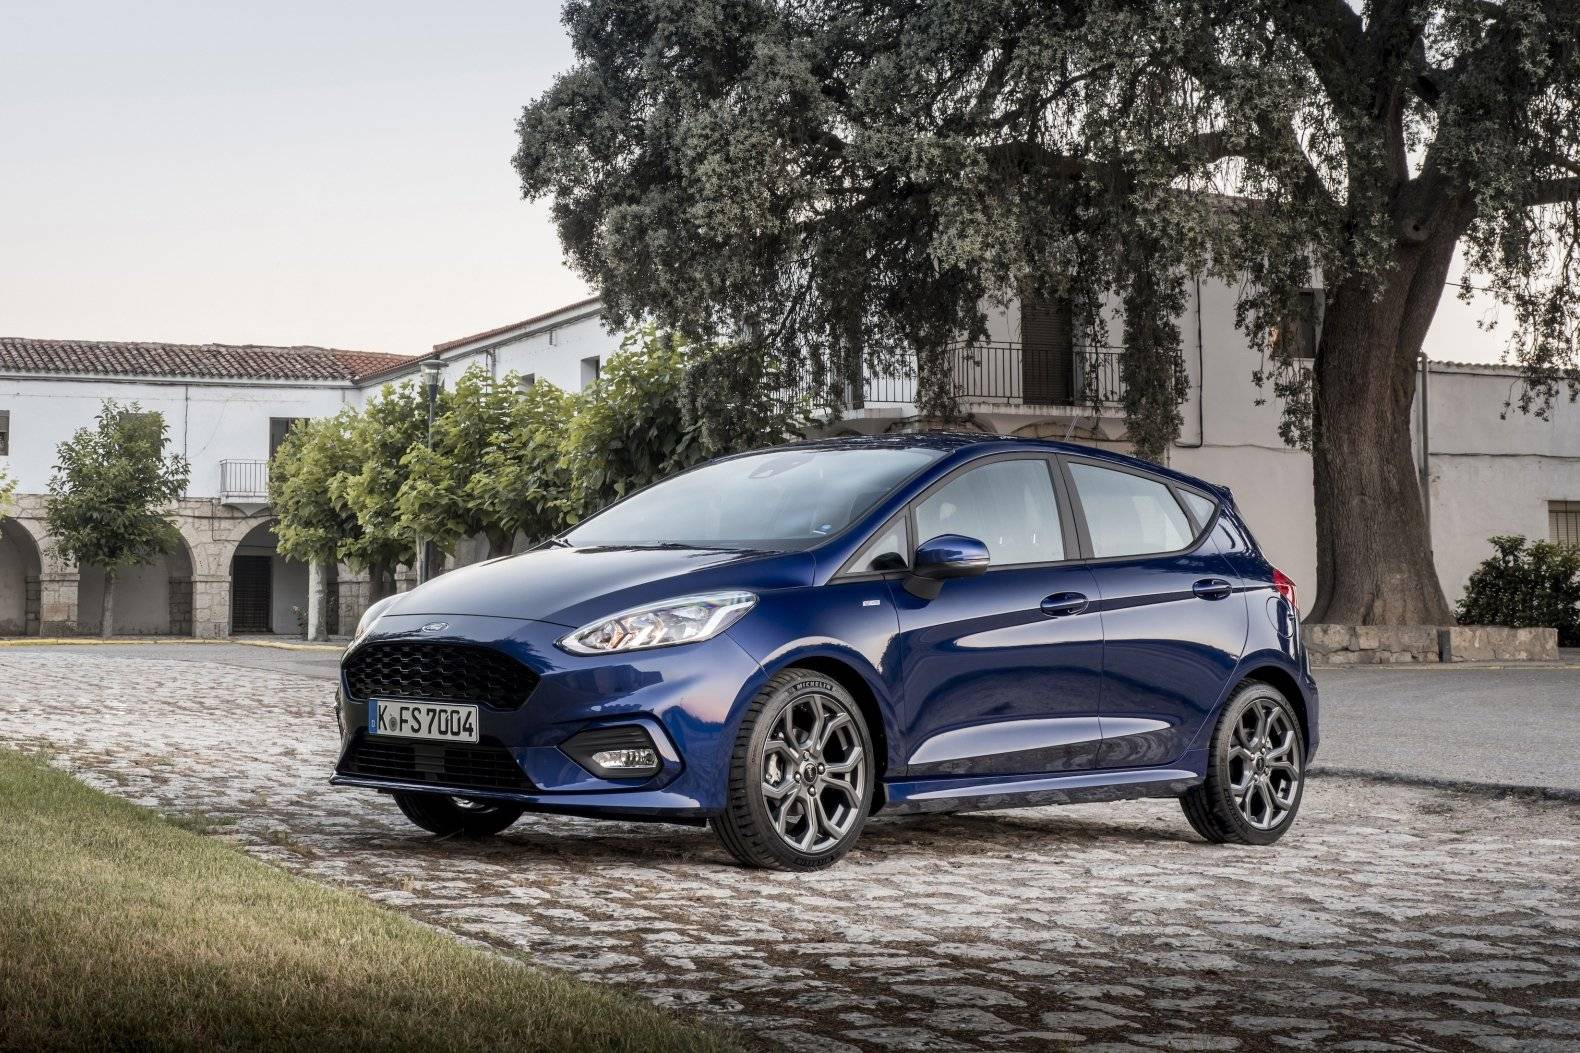 test autotest nieuwe ford fiesta autotests. Black Bedroom Furniture Sets. Home Design Ideas